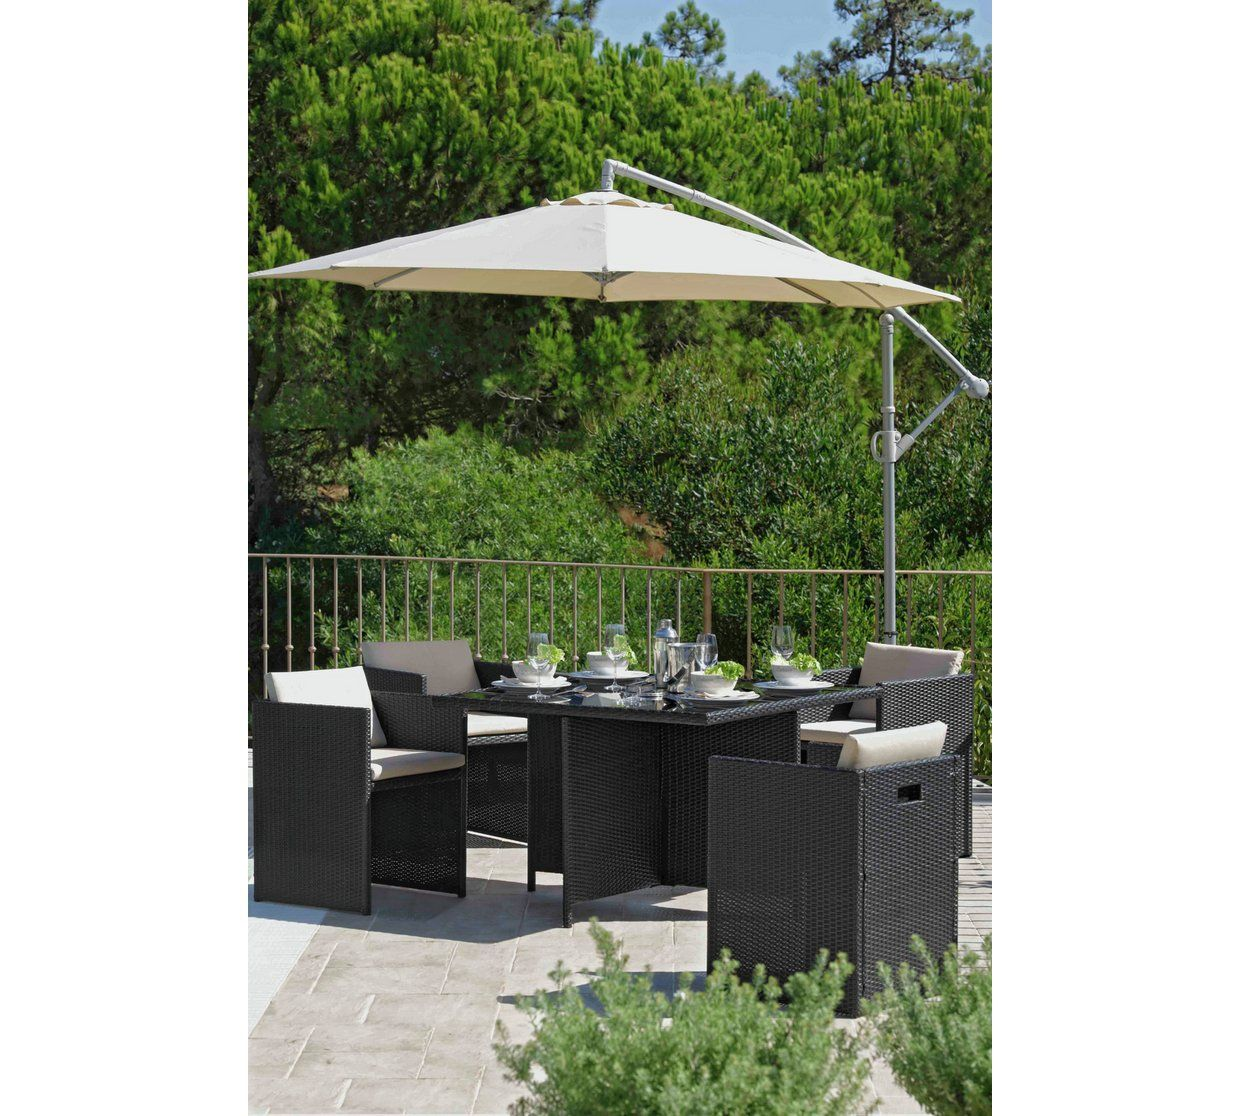 Buy Argos Home Rotating Overhanging Garden Parasol Cream Garden Parasols And Bases Argos Clearance Patio Furniture Garden Parasols Overhanging Parasol - Garden Furniture Clearance Argos